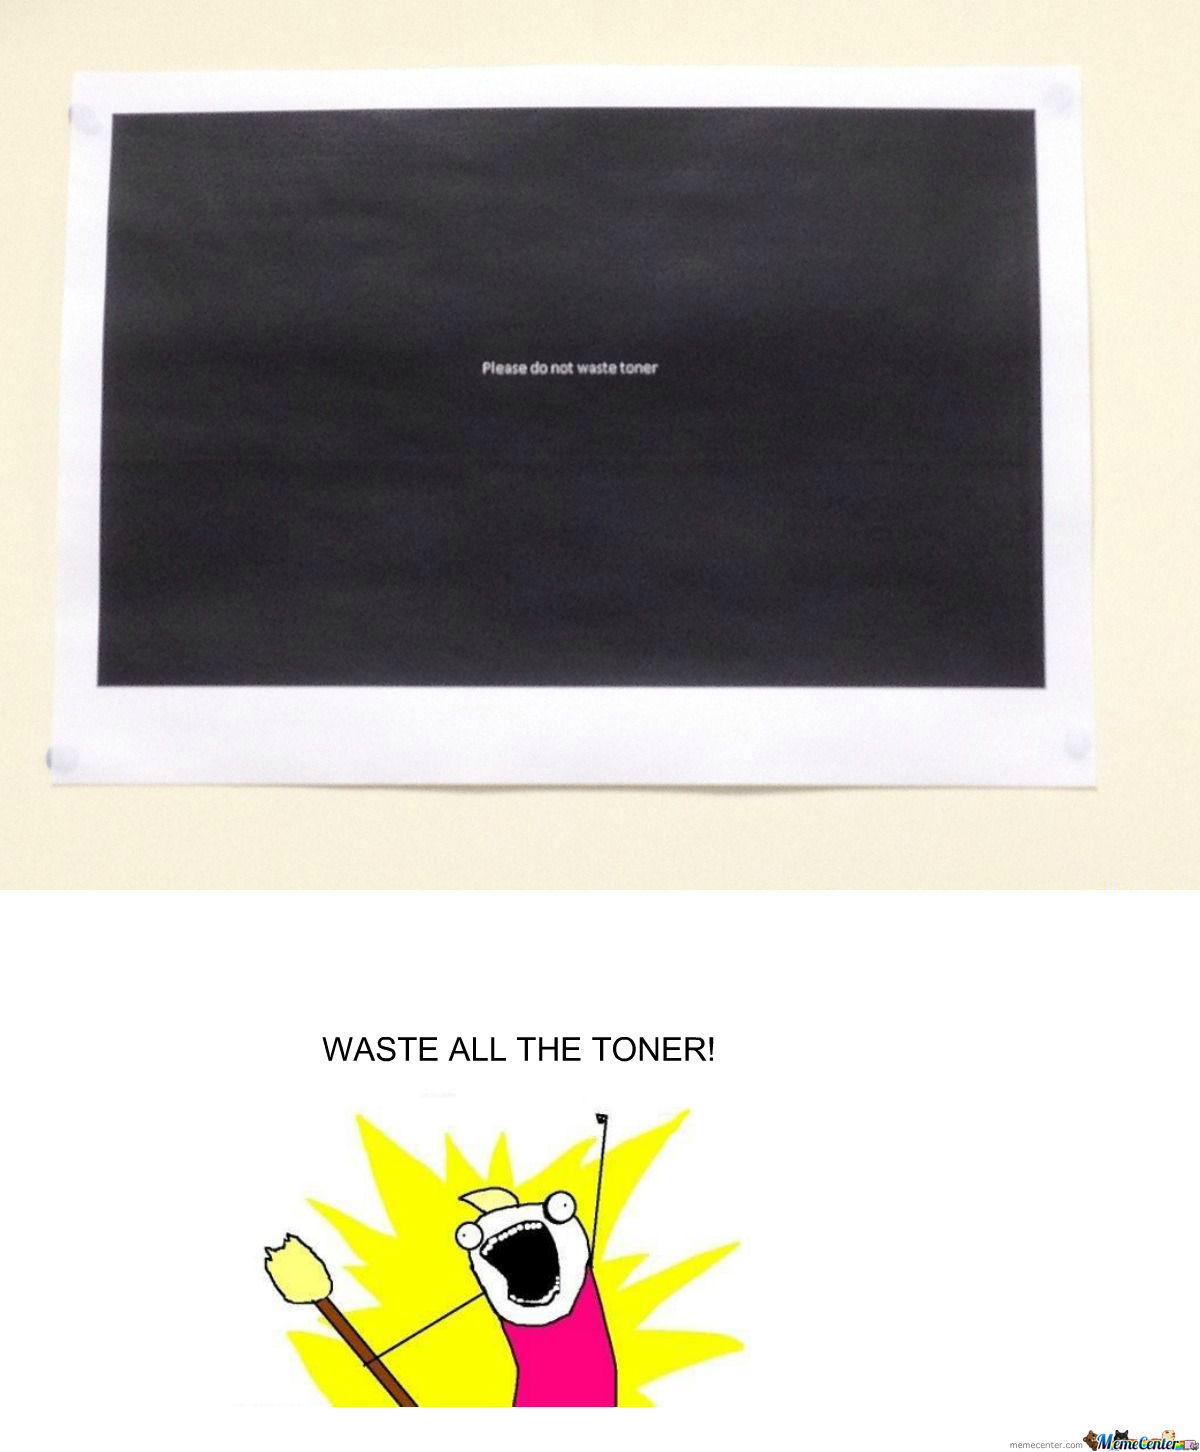 [RMX] Please Don't Waste Toner